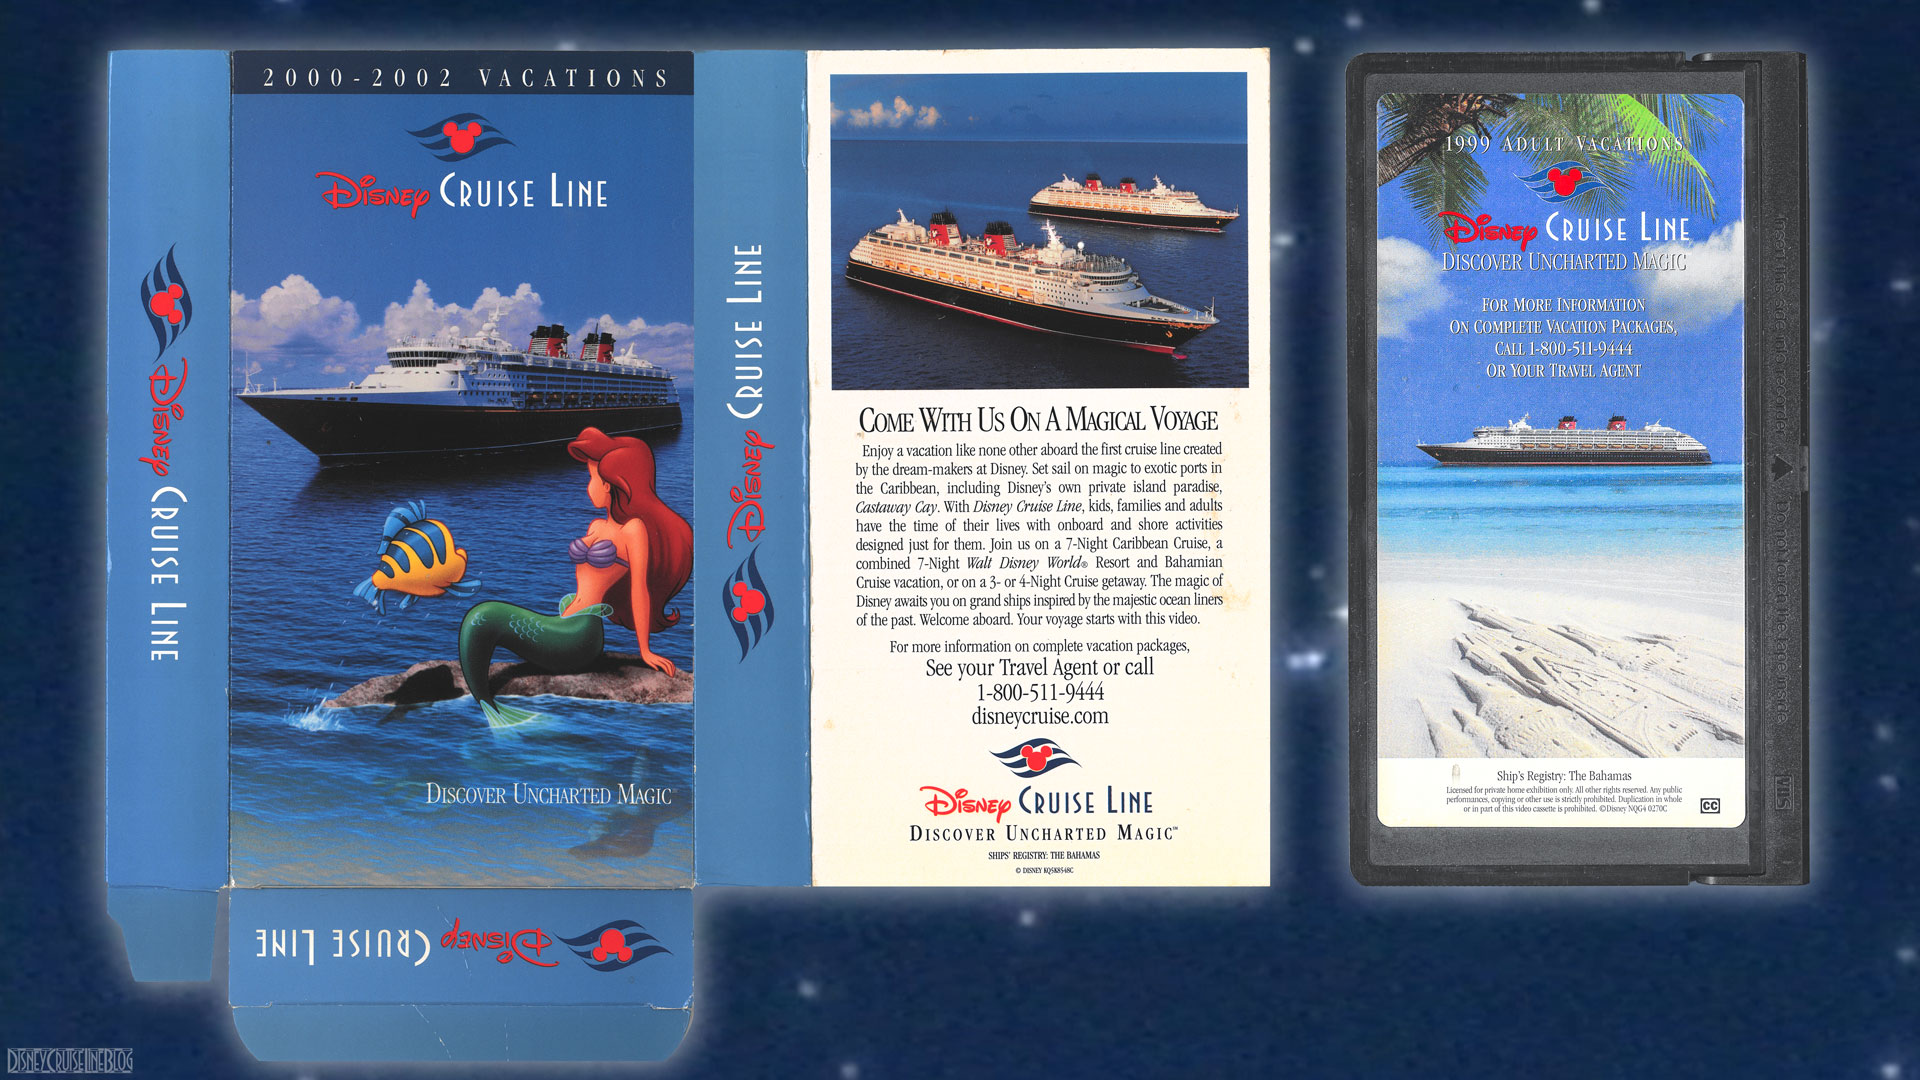 DCL 2000 2002 Cruise Vacations Promotional Video VHS